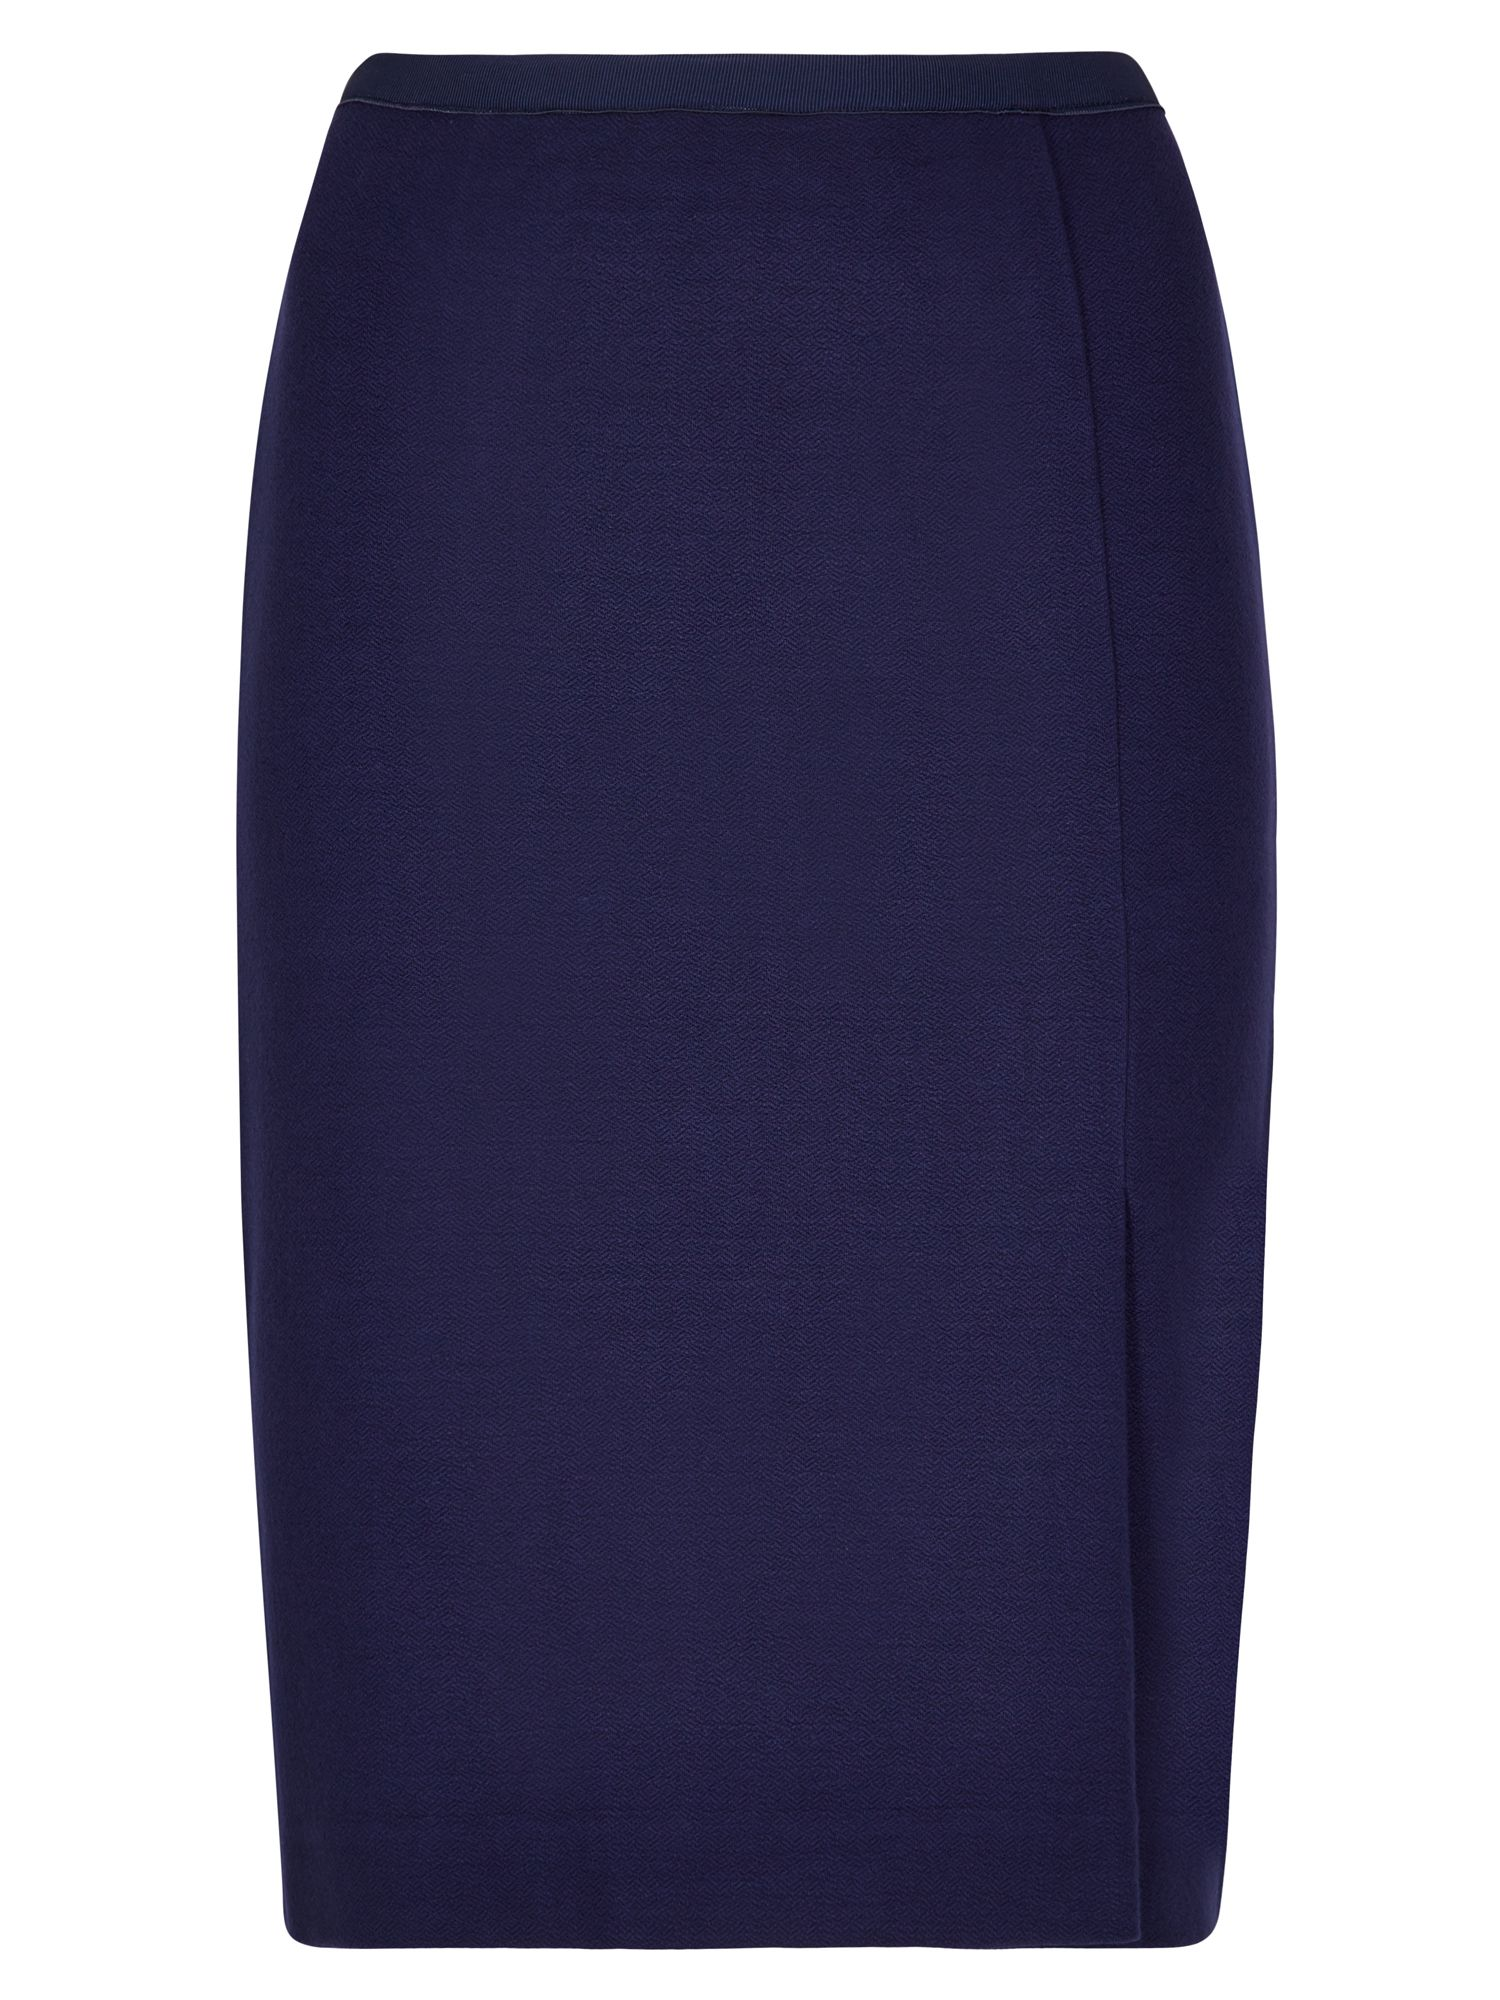 Winser London Crepe Jersey Skirt, Blue